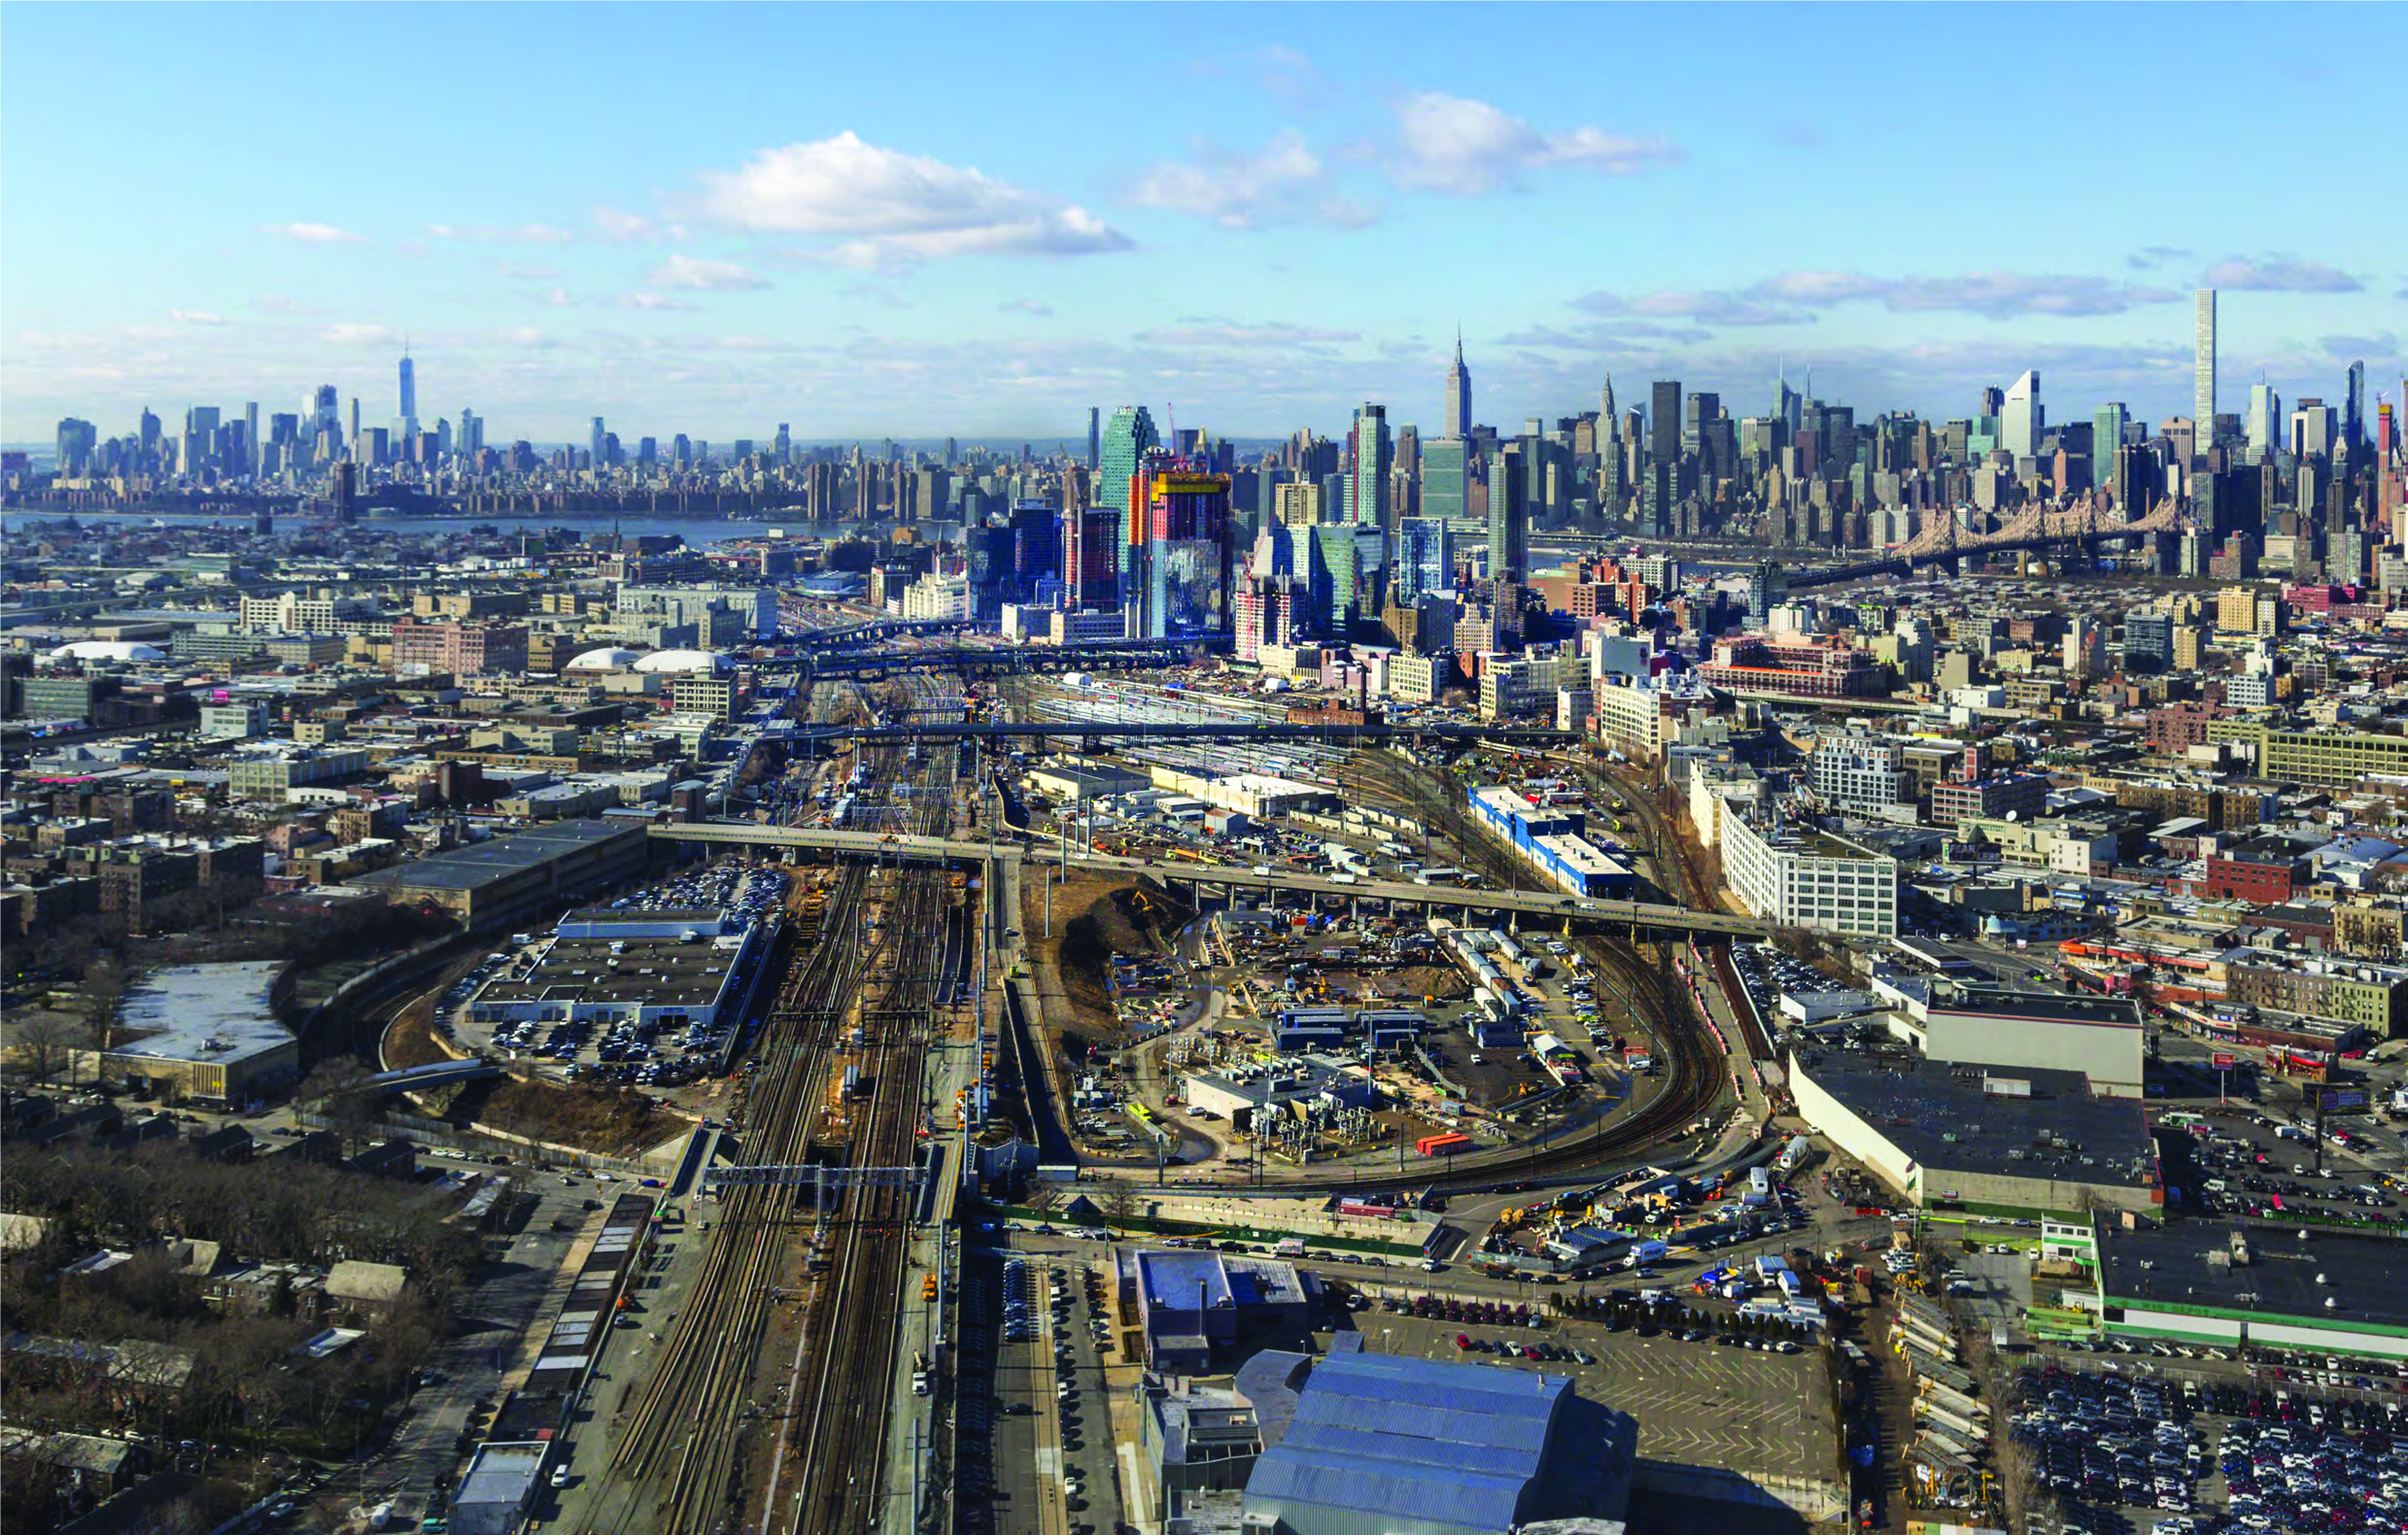 Overall Aerial of Sunnyside Yard in 2016. Looking west towards Long Island City and Midtown Manhattan